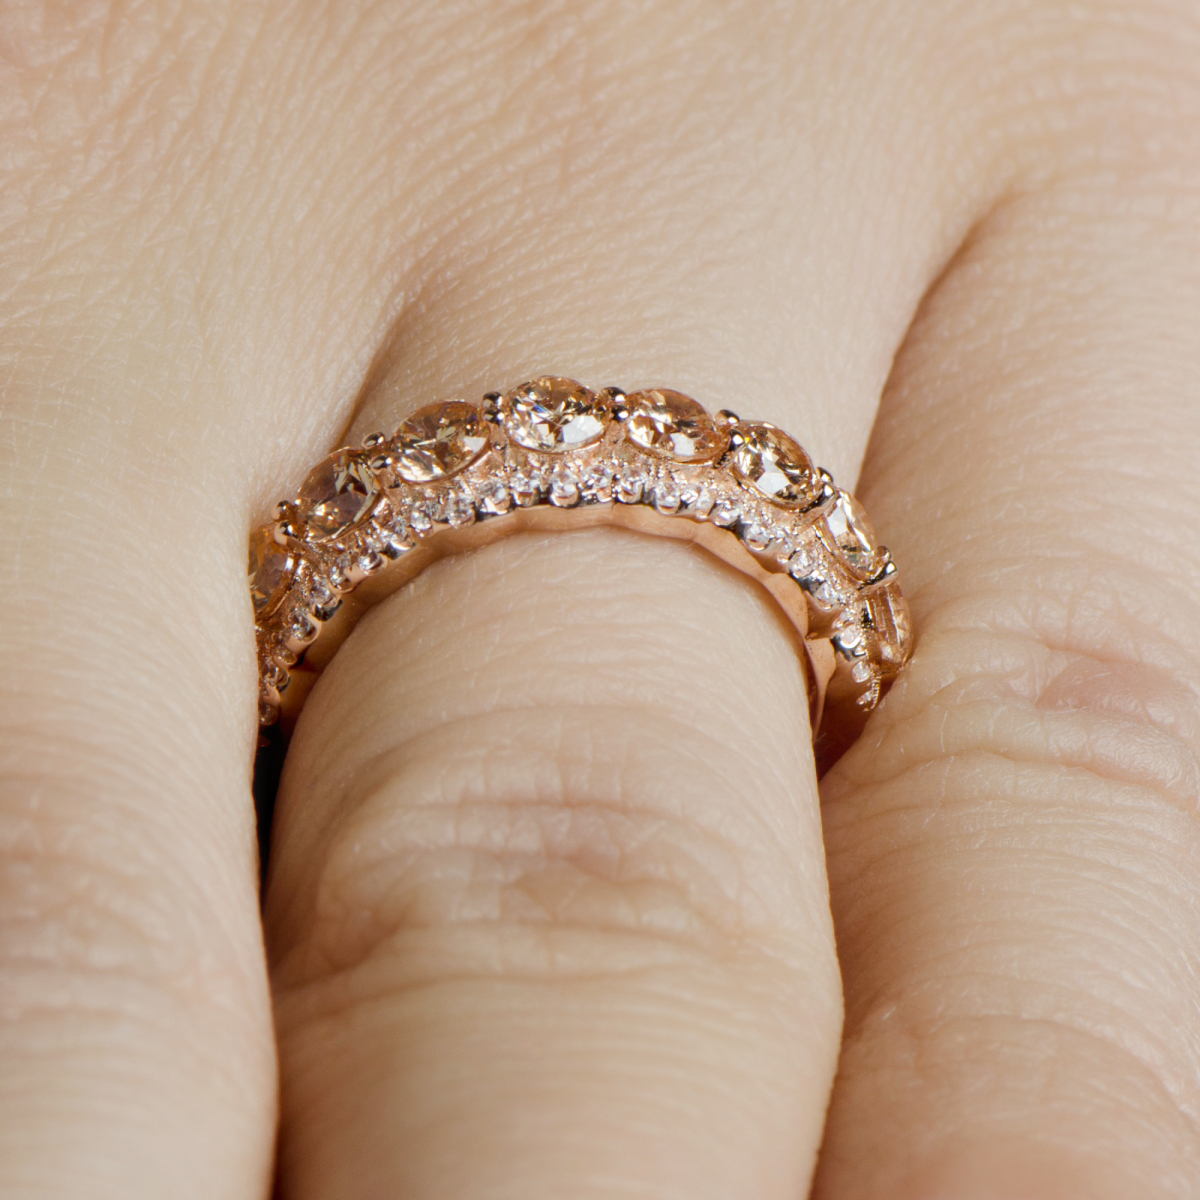 Karita S Rose Gold Champagne Cz Wedding Band 15 Jpg